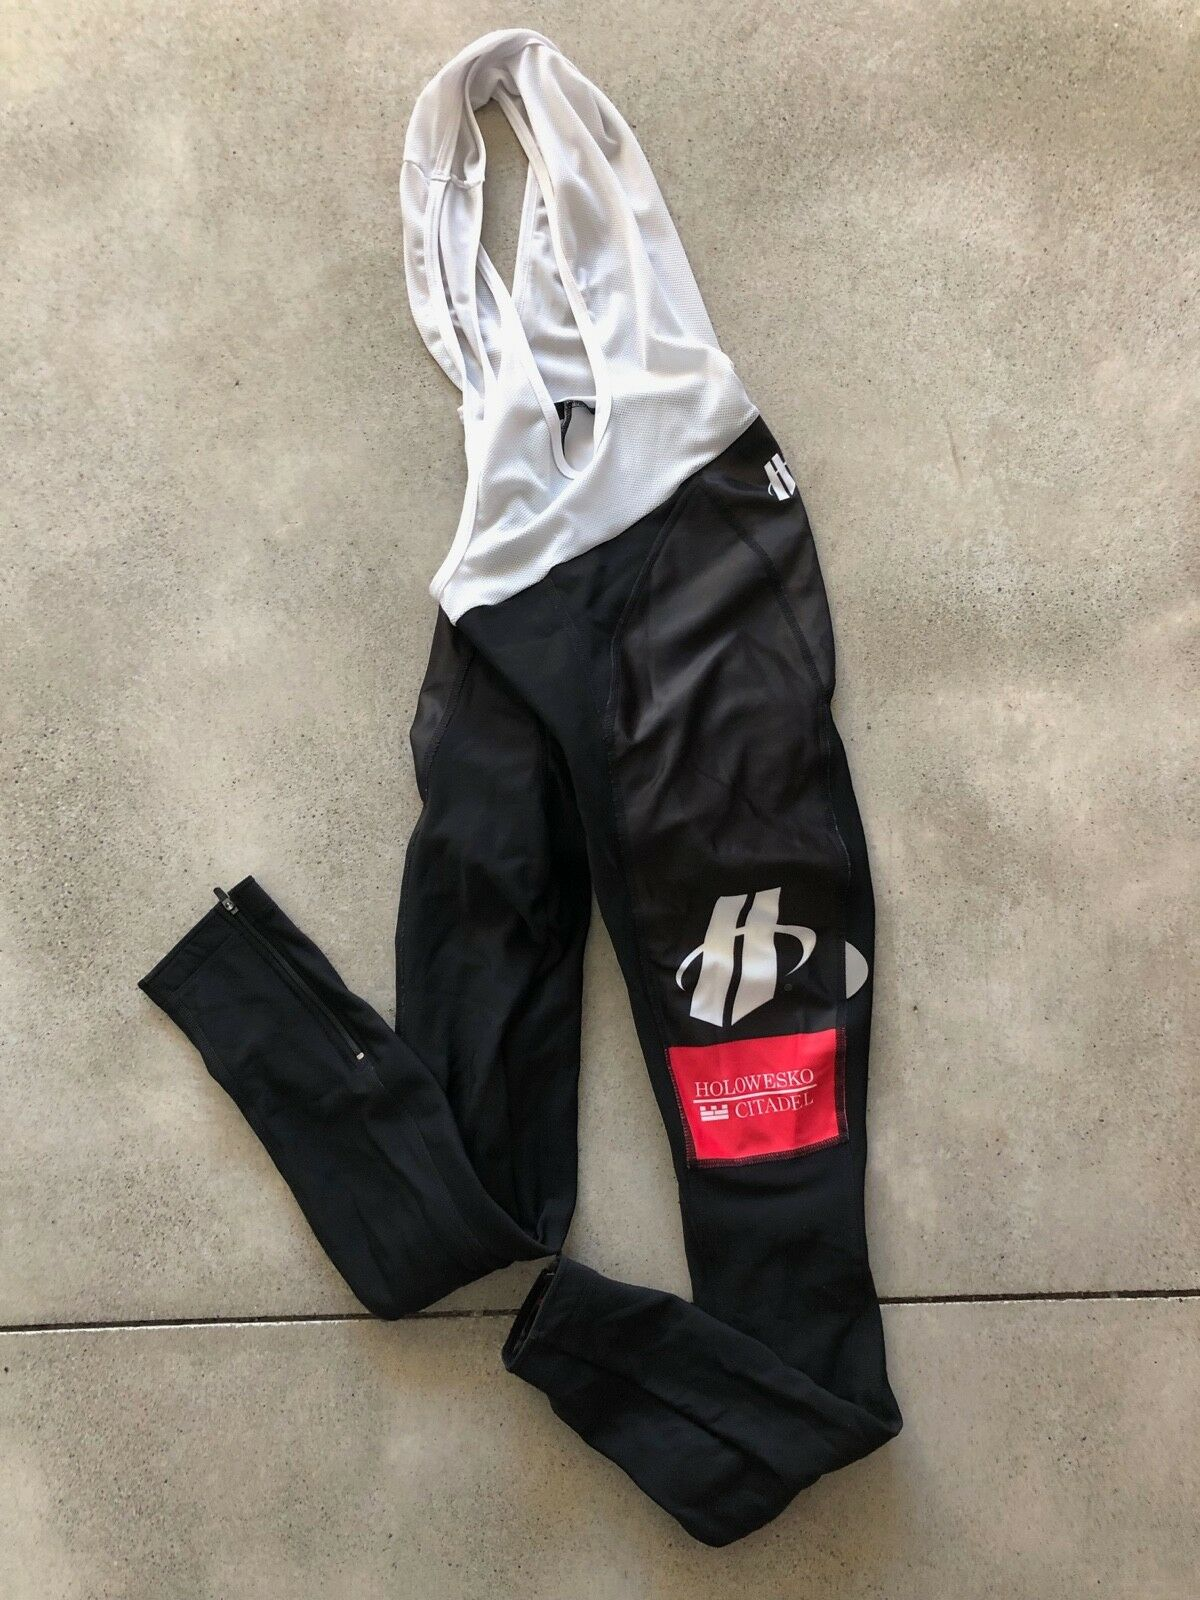 Men's Hincapie Holowesko Citadel Racing Team Element Thermal Bib Tights Small